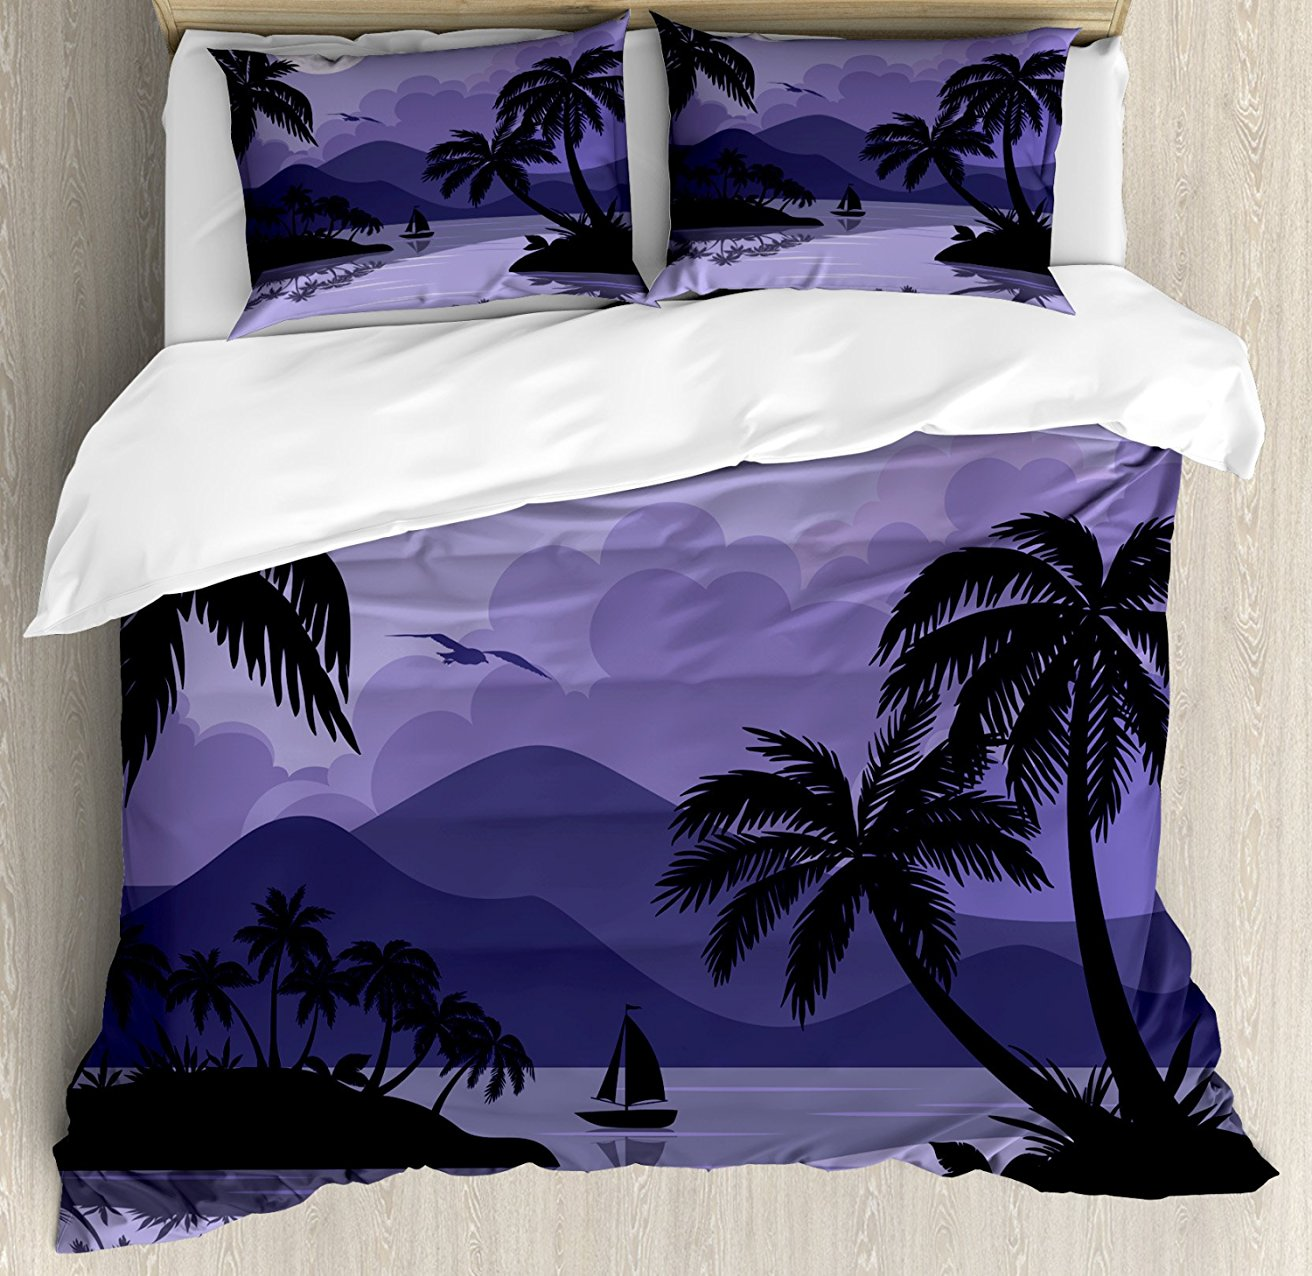 Tropical Duvet Cover Set, Caribbean Island Landscape at Night Full Moon Sailboat and Palm Trees, 4 Piece Bedding Set